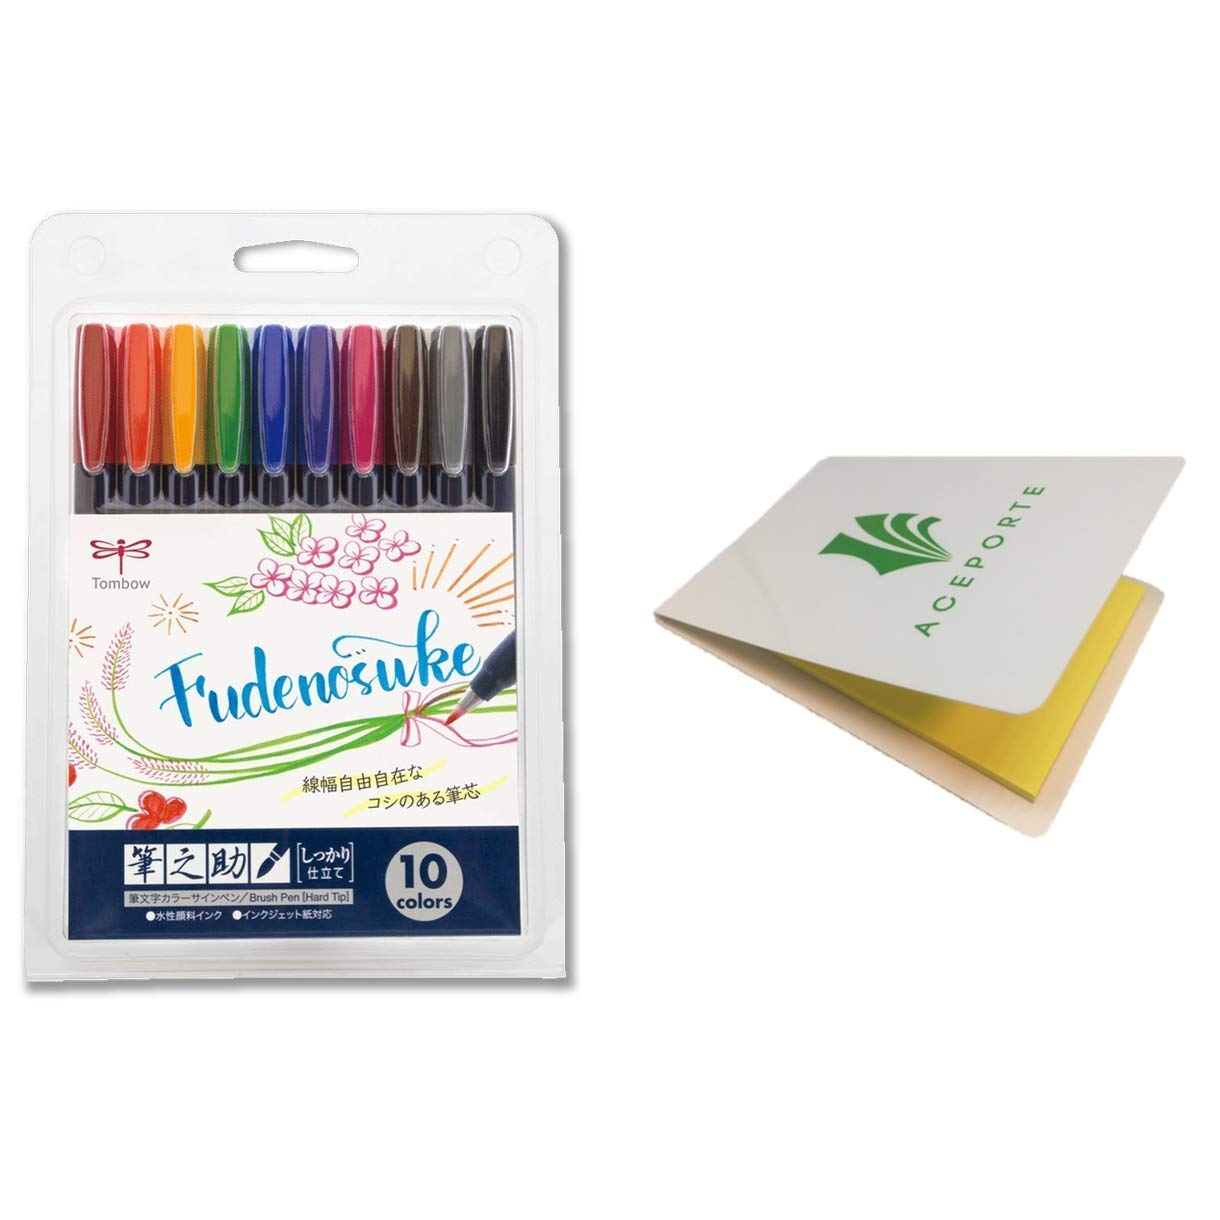 Tombow Fudenosuke Colors Set 10-Pack, WS-BH10C (Japanese Version) with Original Sticky Notes. Hard Tip Fudenosuke Fude Brush Pens in Assorted Colors for Calligraphy and Art Drawings